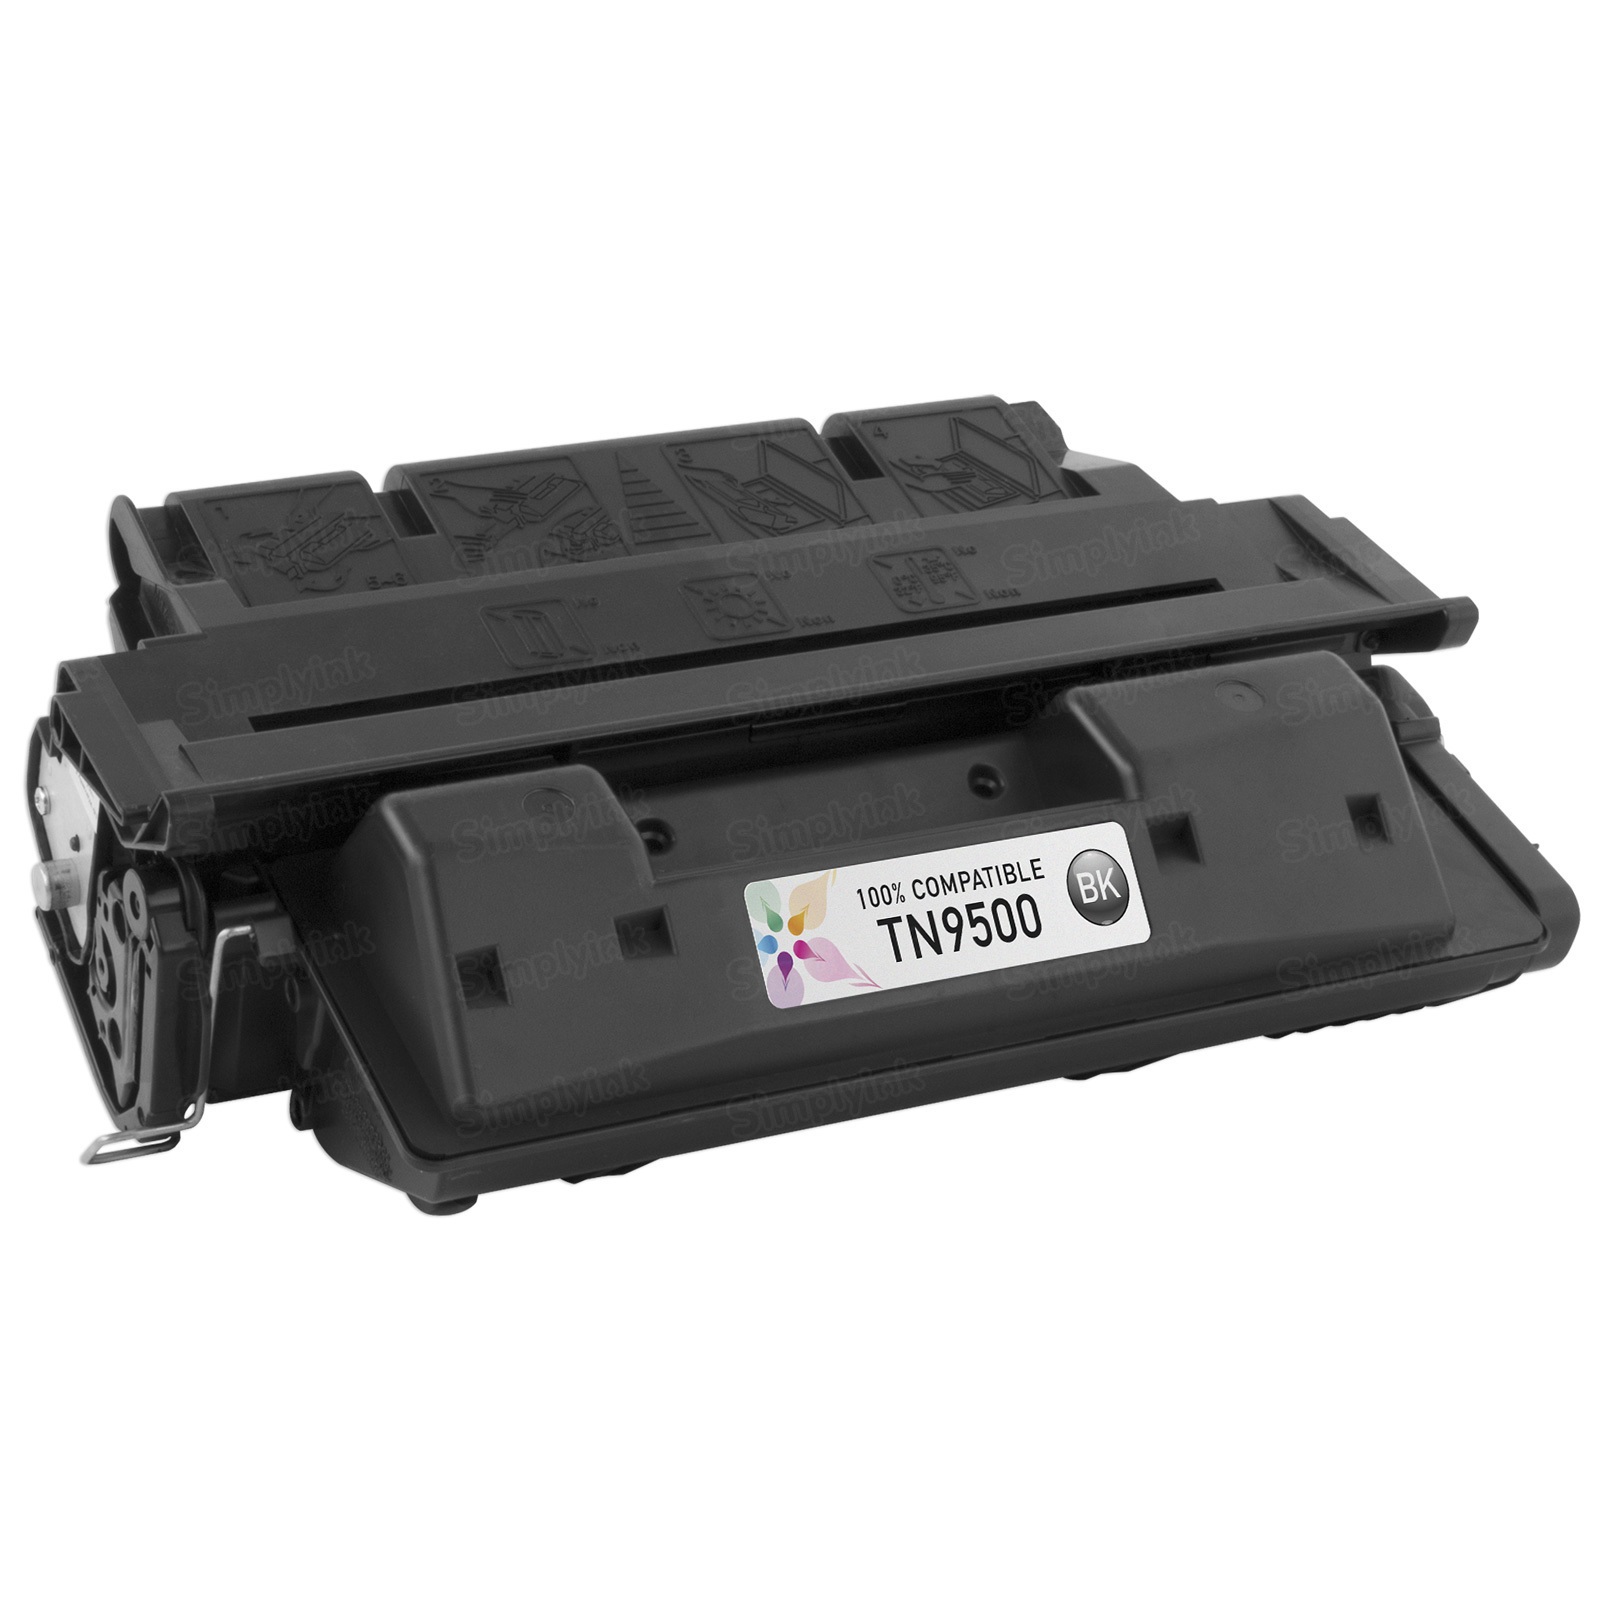 Remanufactured Brother TN9500 Black Laser Toner